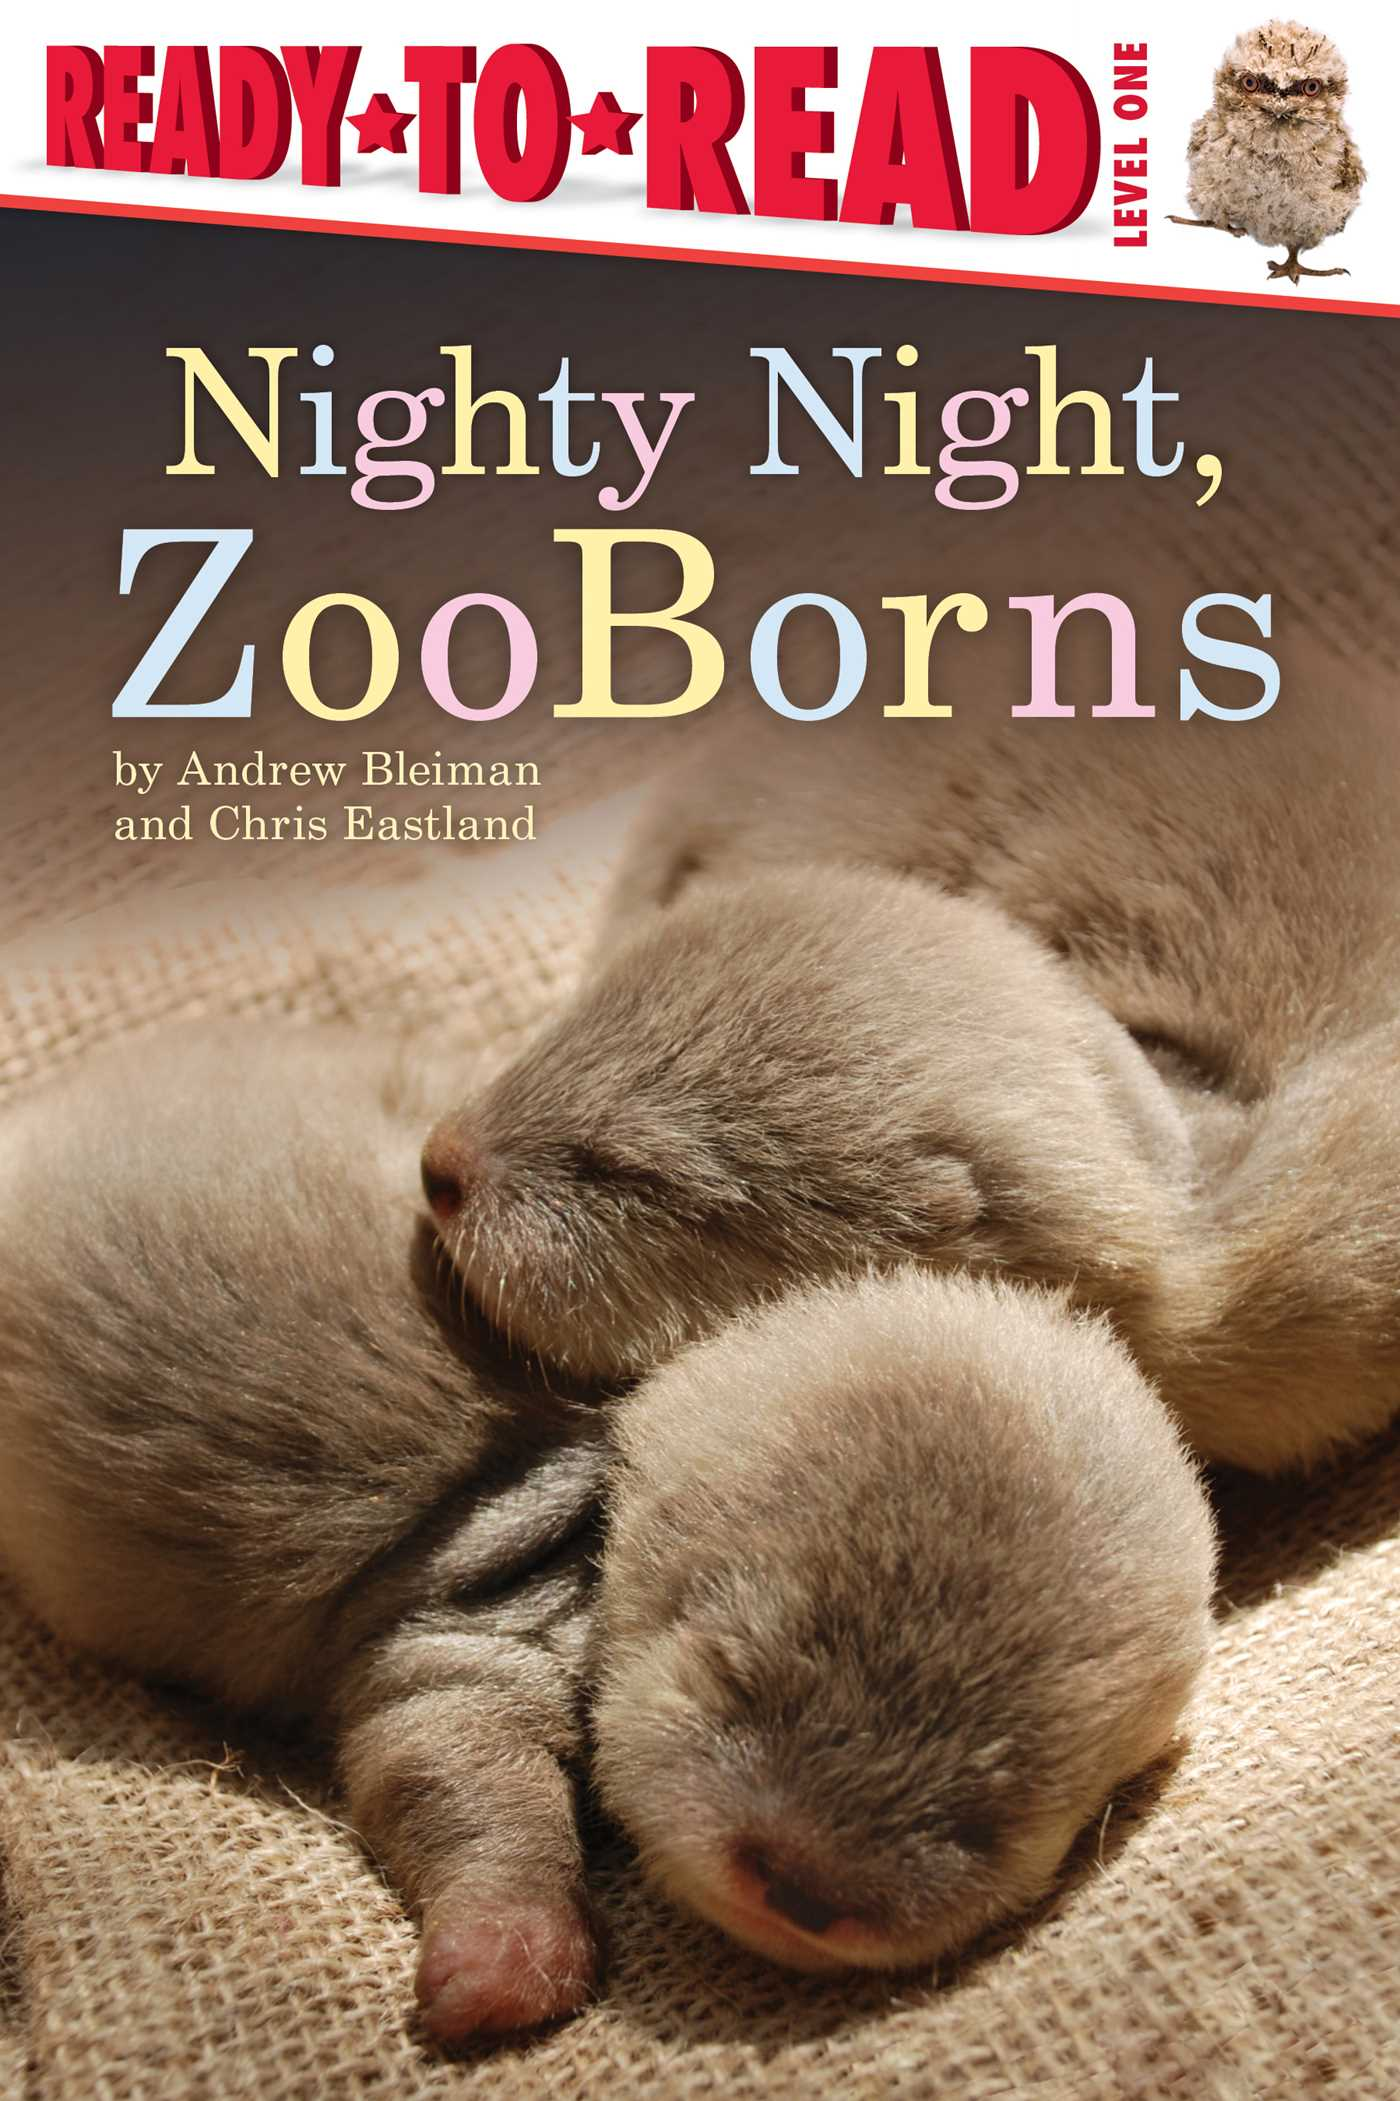 Nighty-night-zooborns-9781442443853_hr